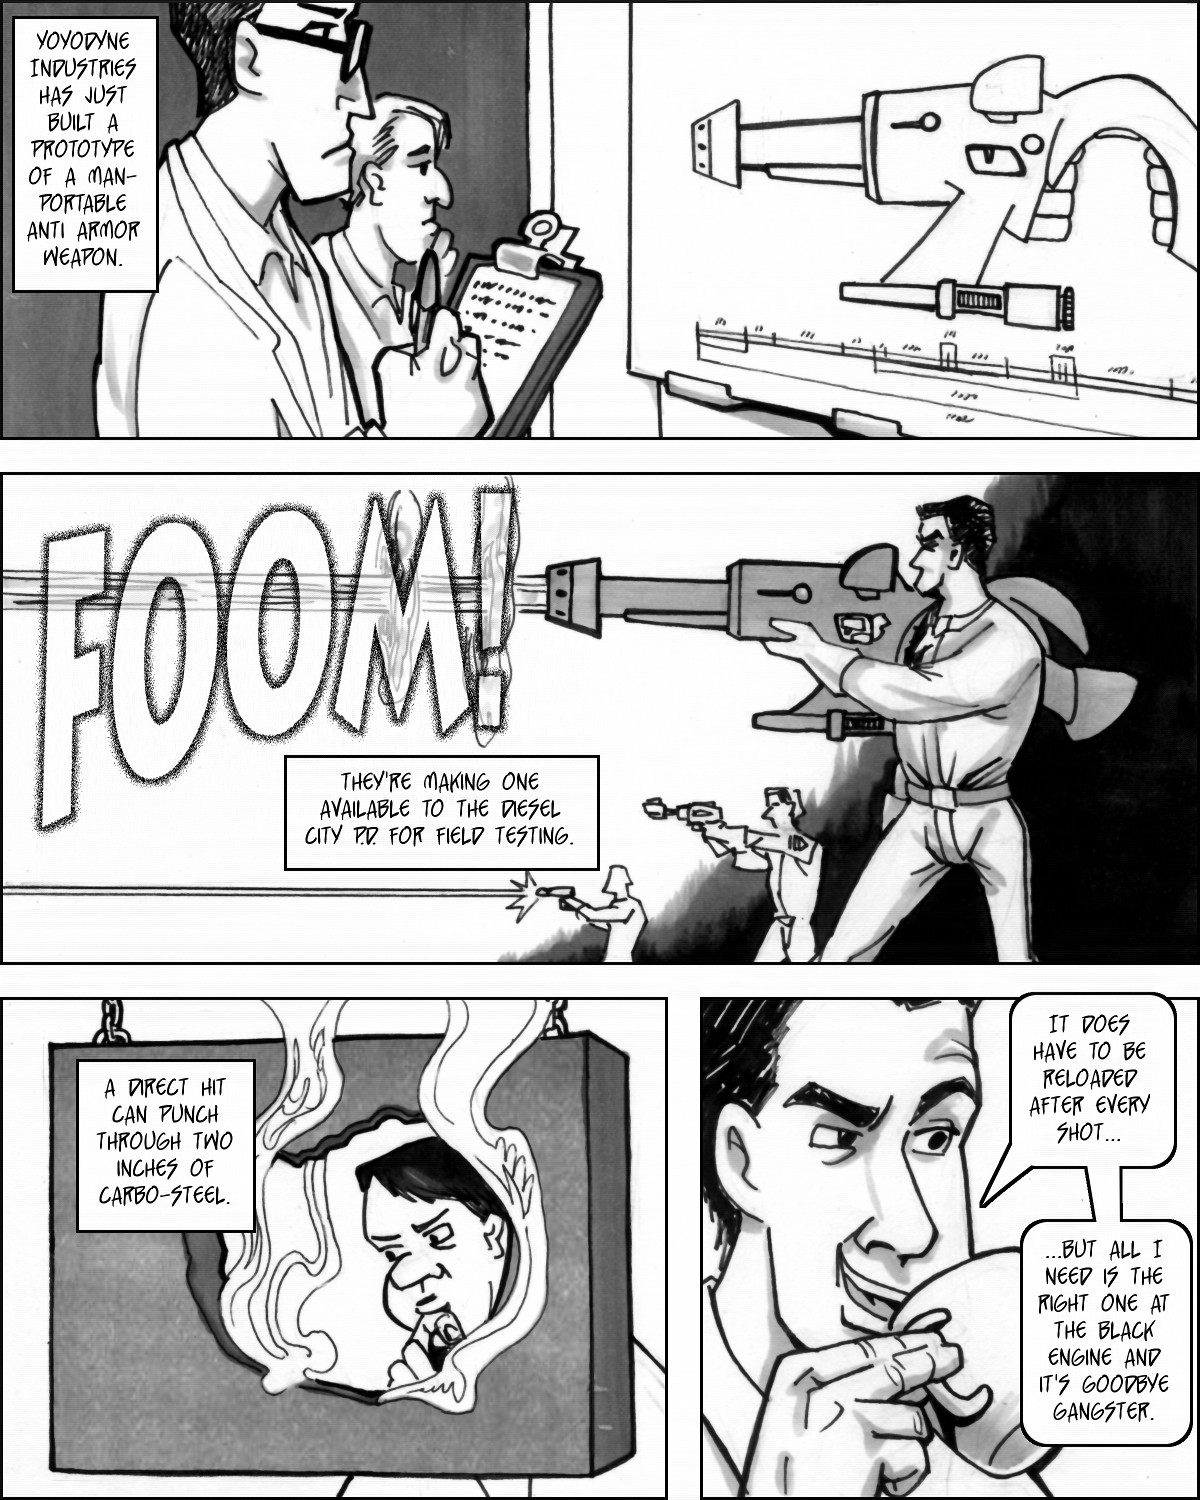 jack Rock has giant gun that goes 'foom!'